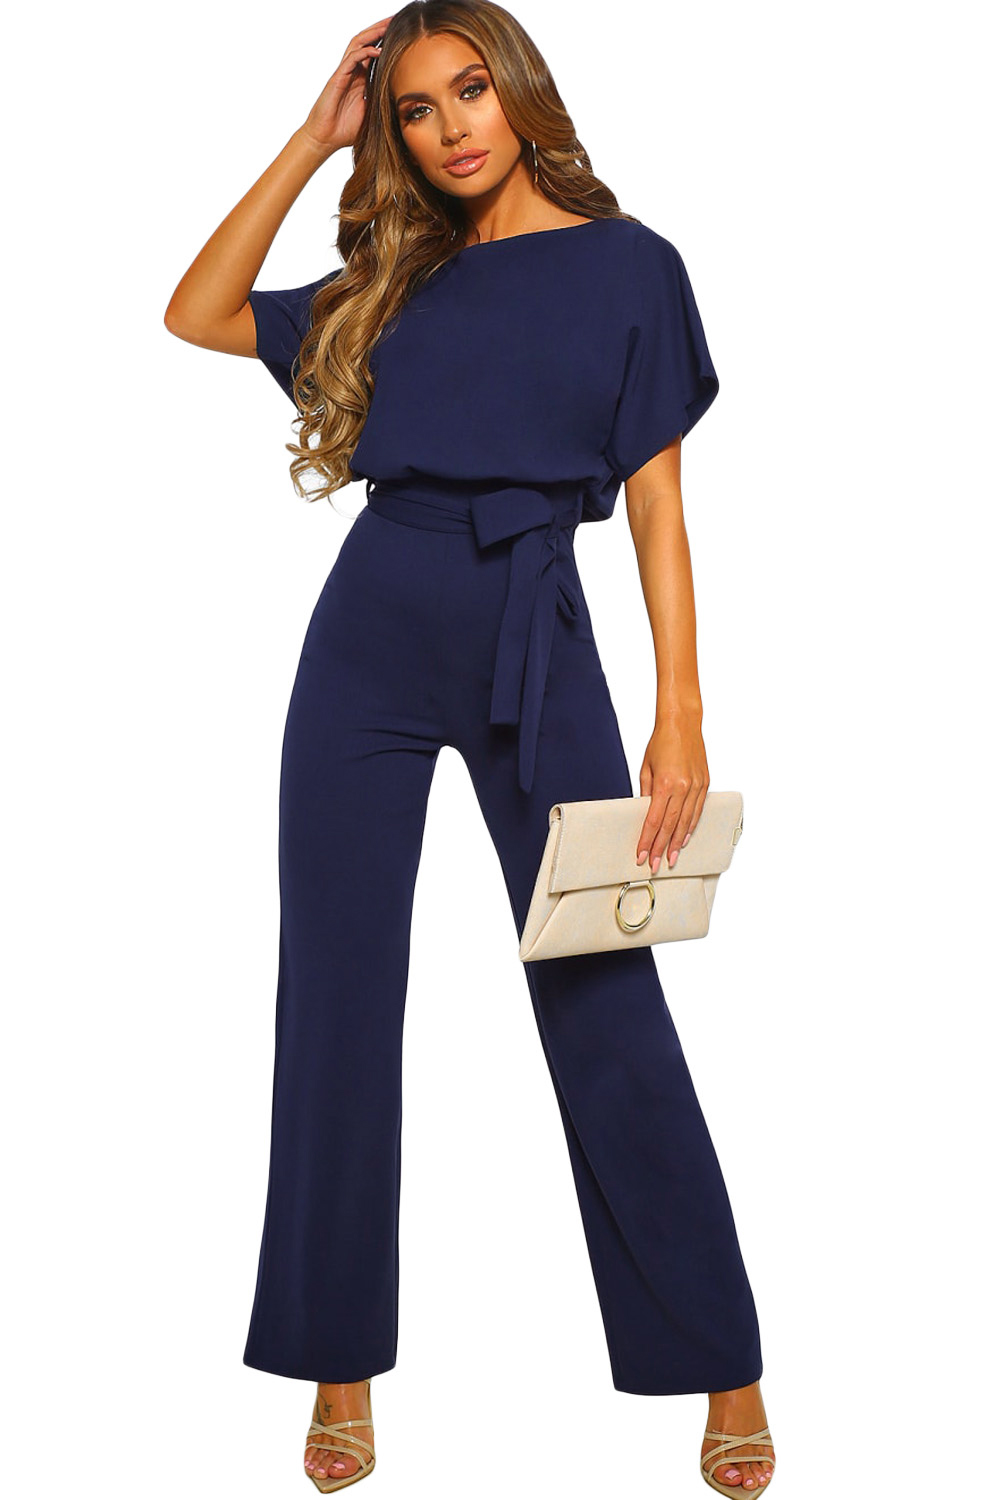 a98e13667c US  8.6 - Blue Oh So Glam Belted Wide Leg Jumpsuit - www ...